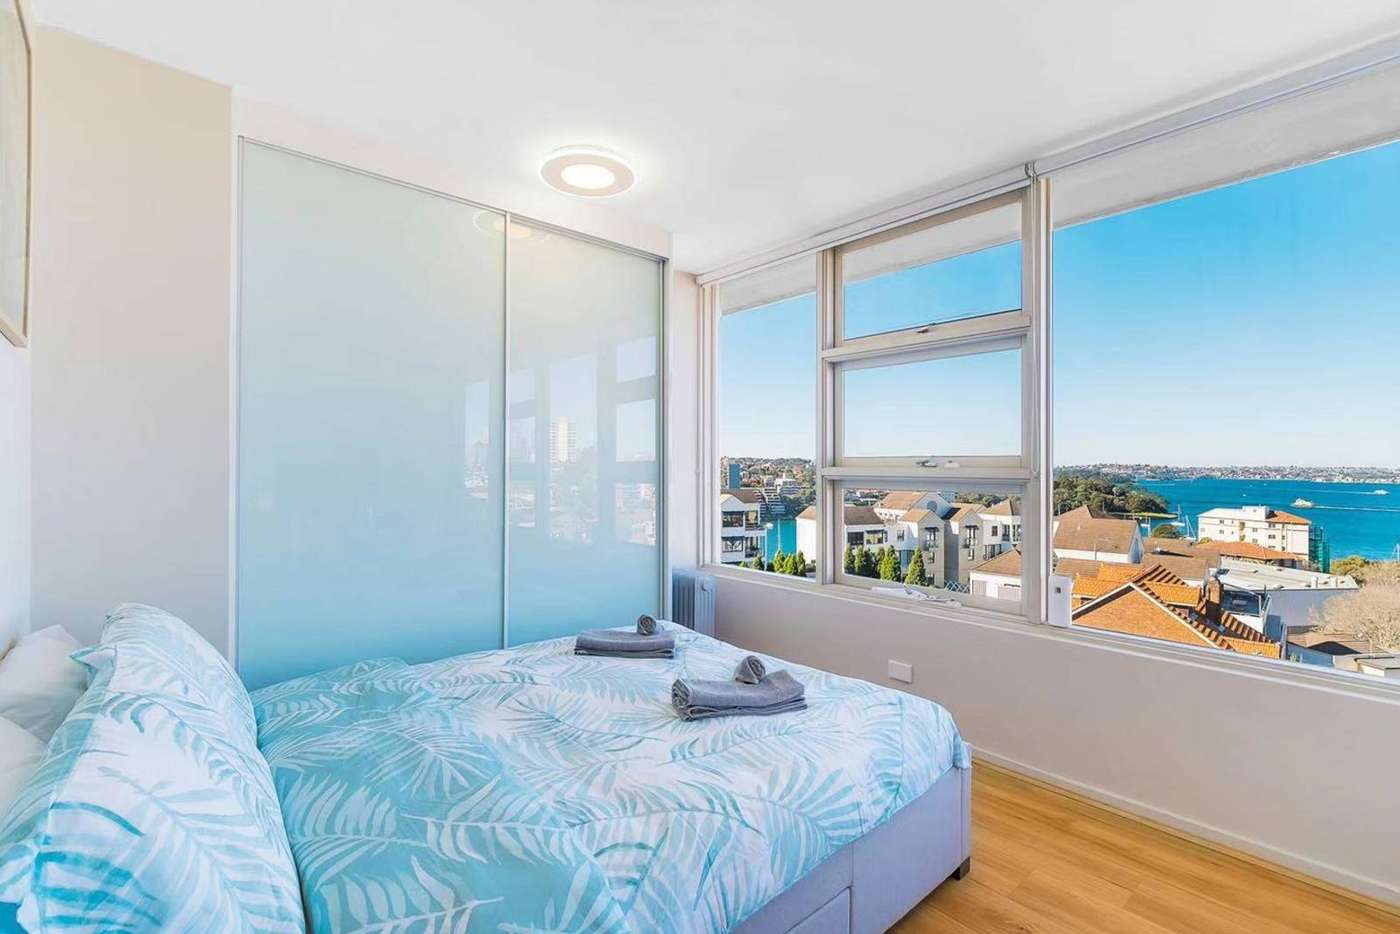 Main view of Homely studio listing, 84/106 High Street, North Sydney NSW 2060